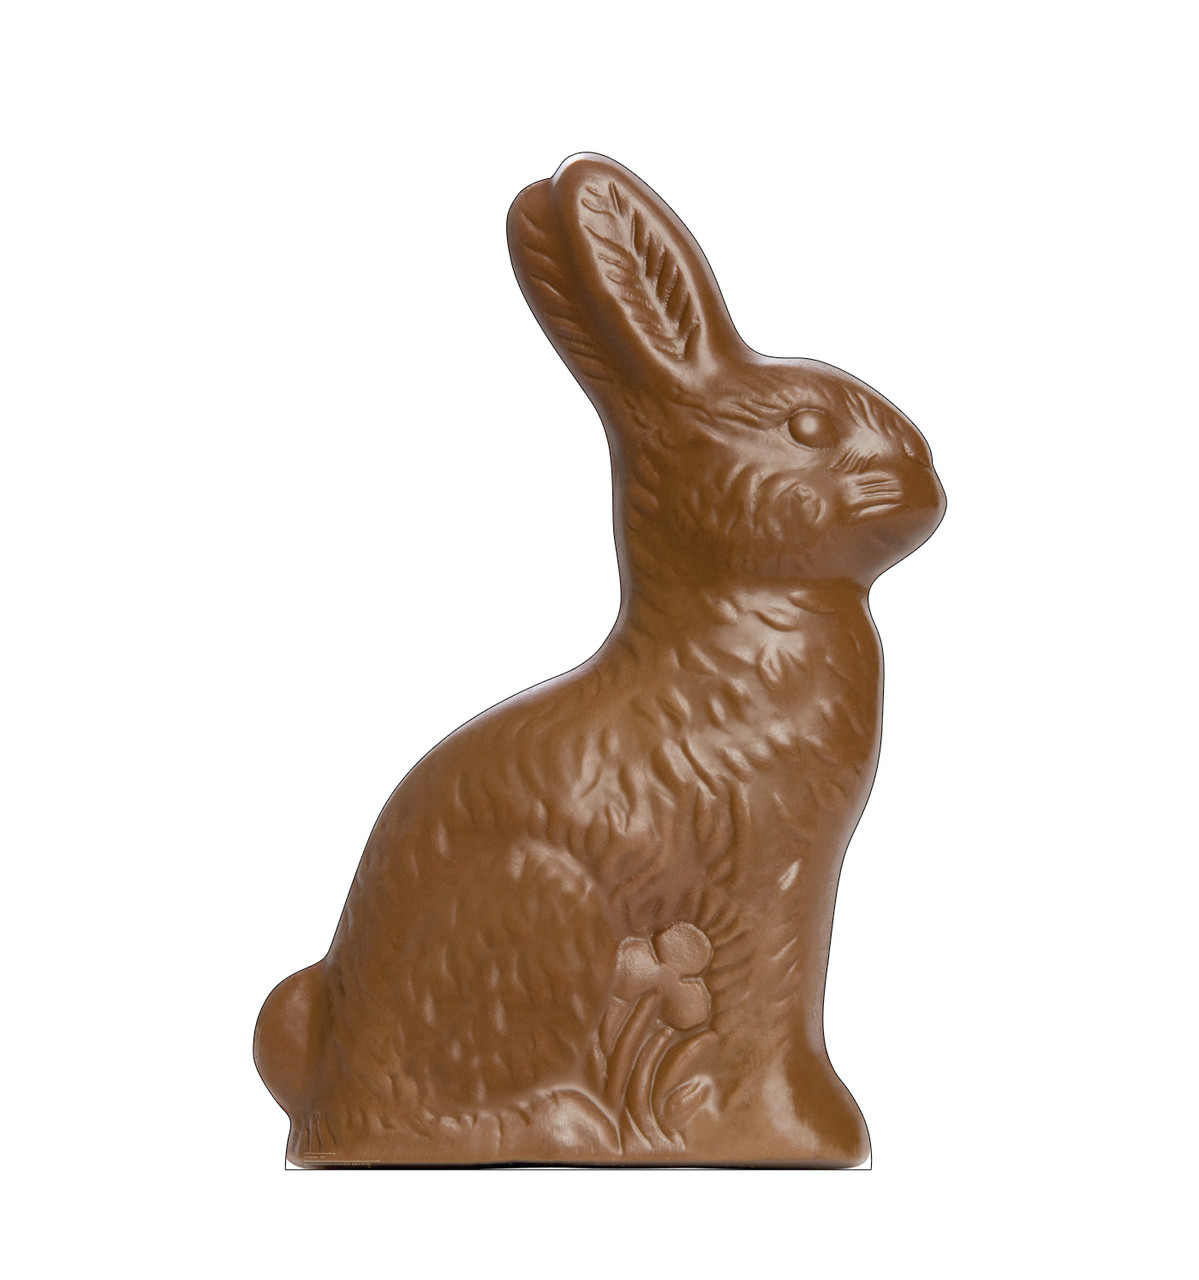 Life-size cardboard standee of a Chocolate Easter Bunnys.